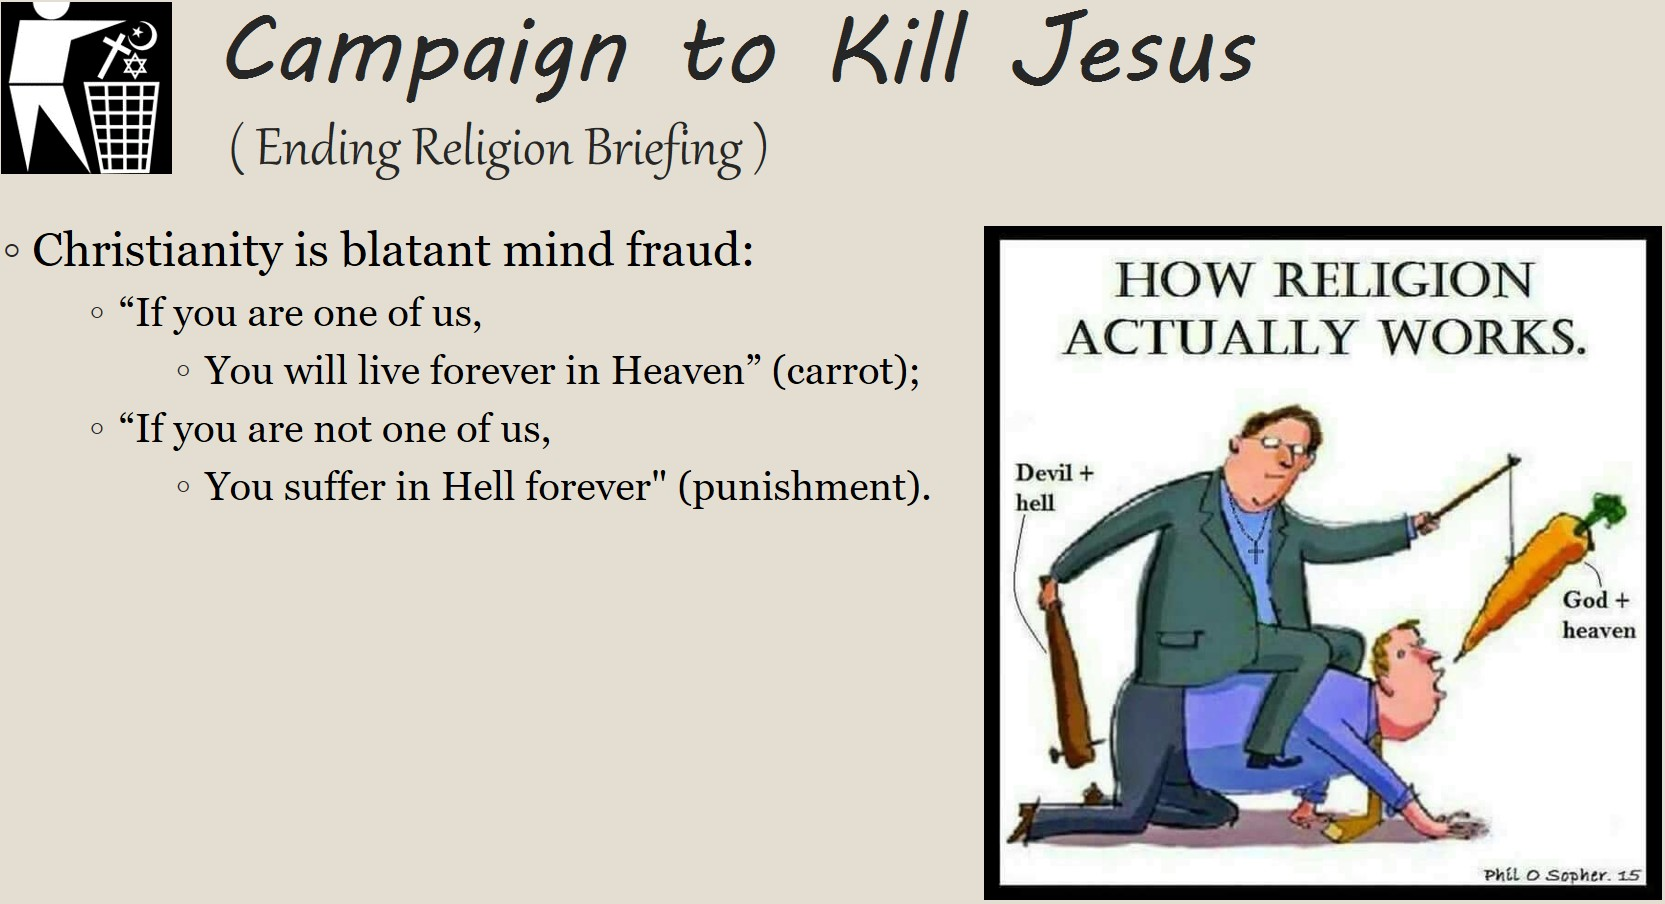 Christianity is blatant mind fraud with cartoon